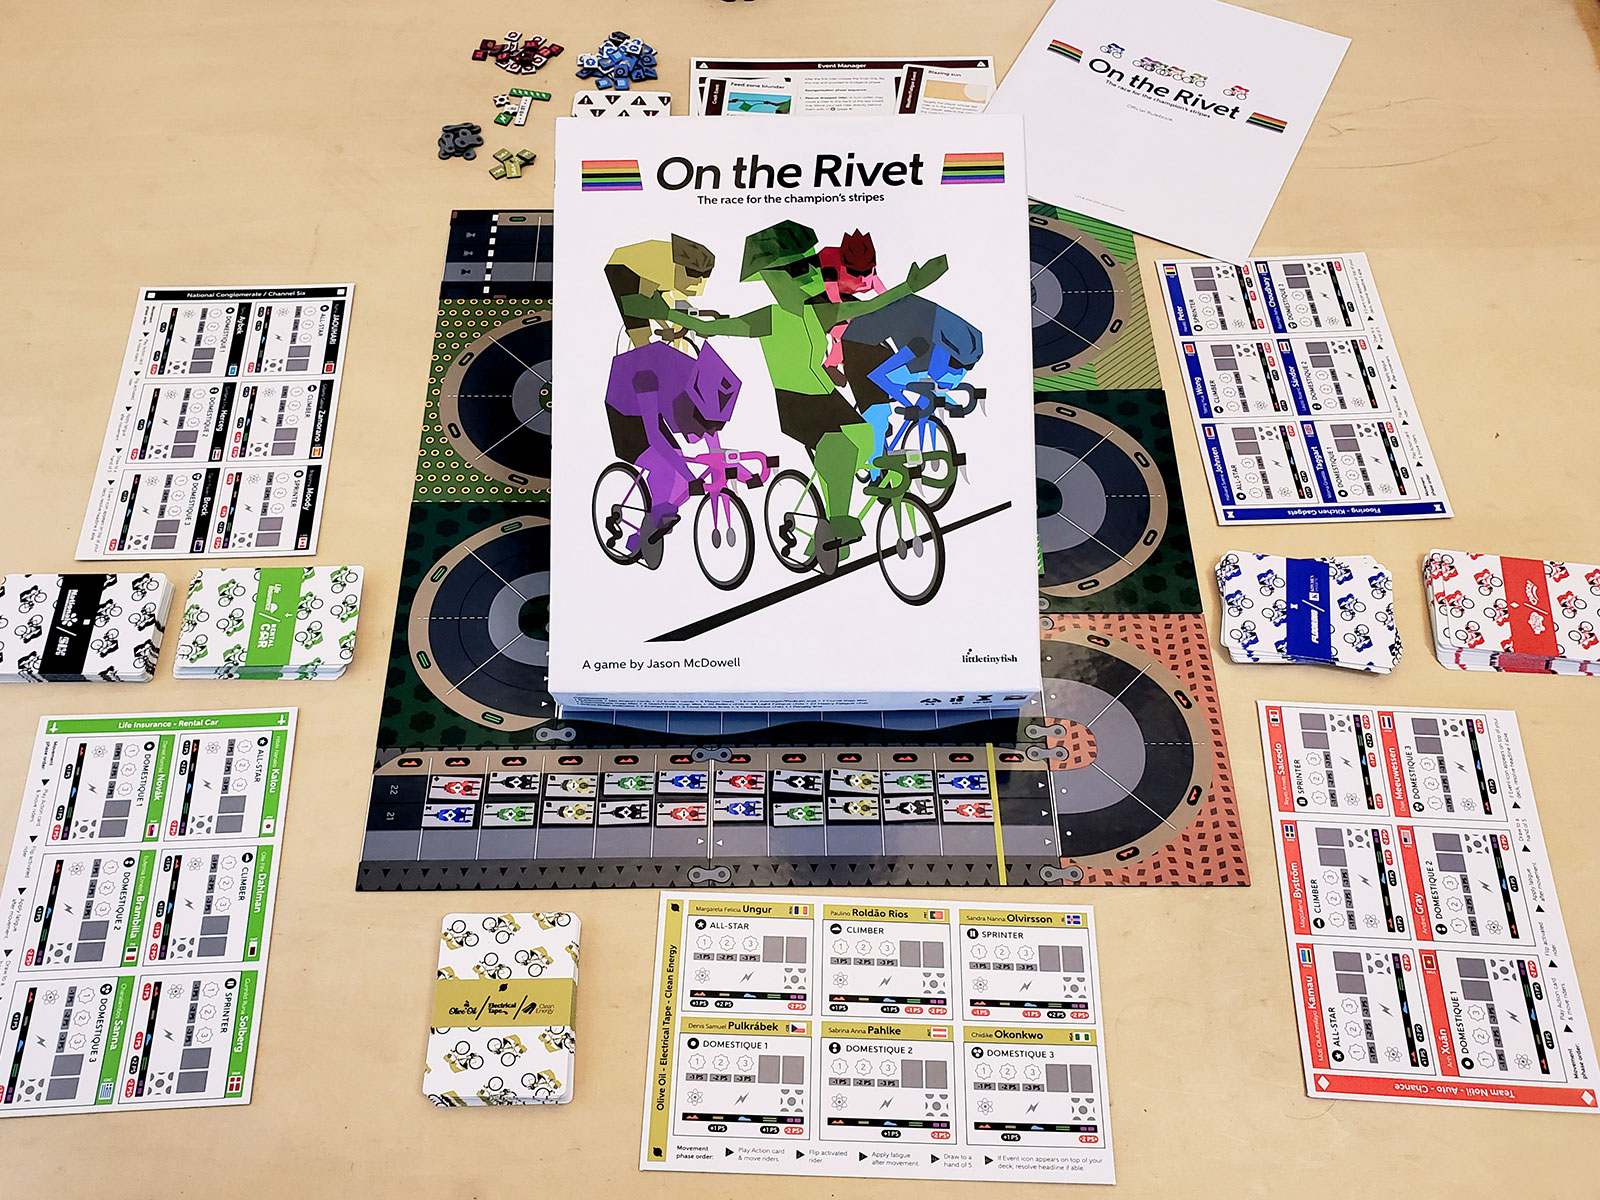 Press Release – 09/05/2020 – Road racing board game, On the Rivet, has been successfully funded on Kickstarter